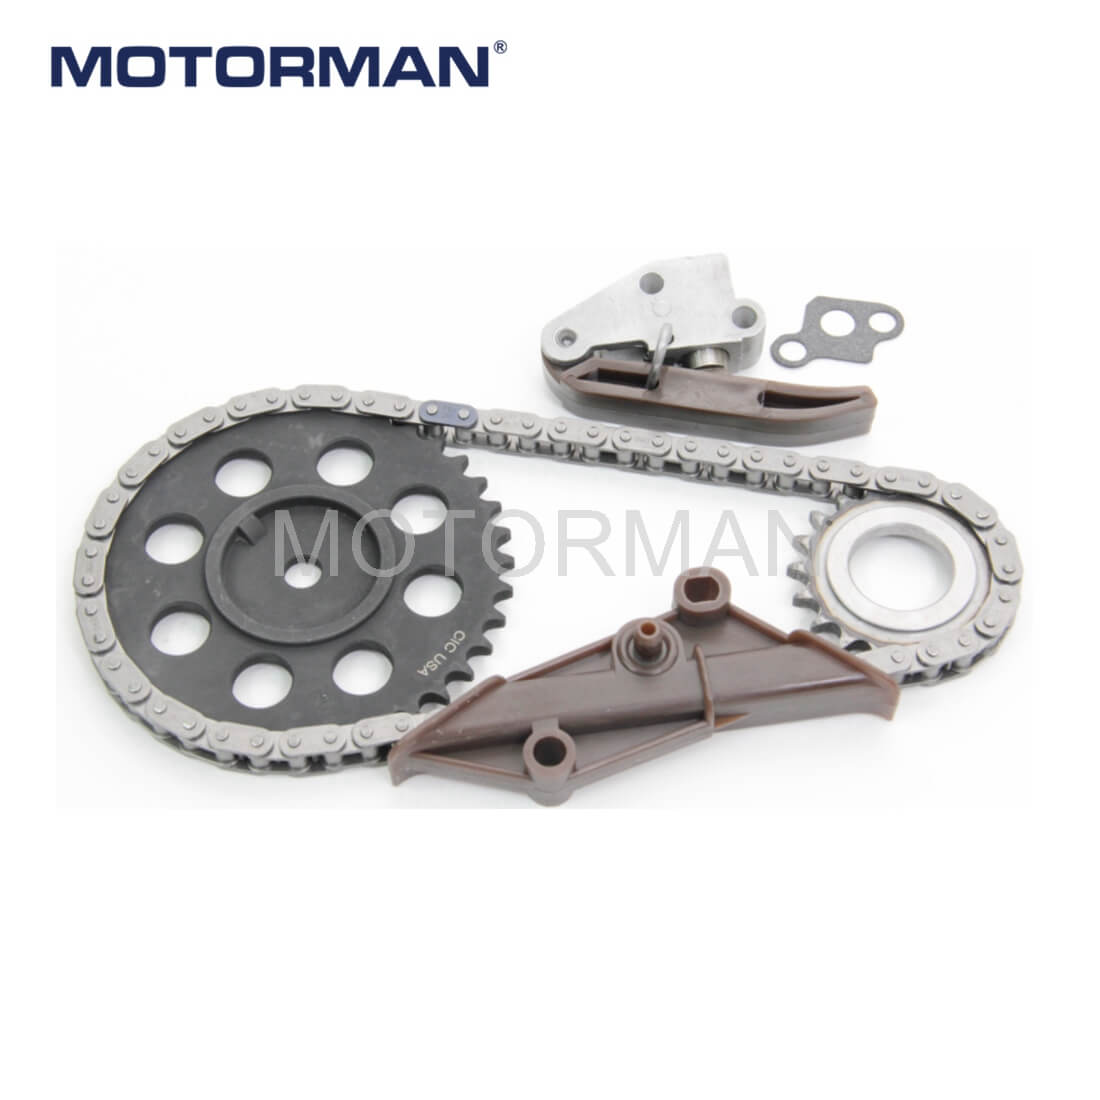 Motorman Timing Chain Kits 9-4172S